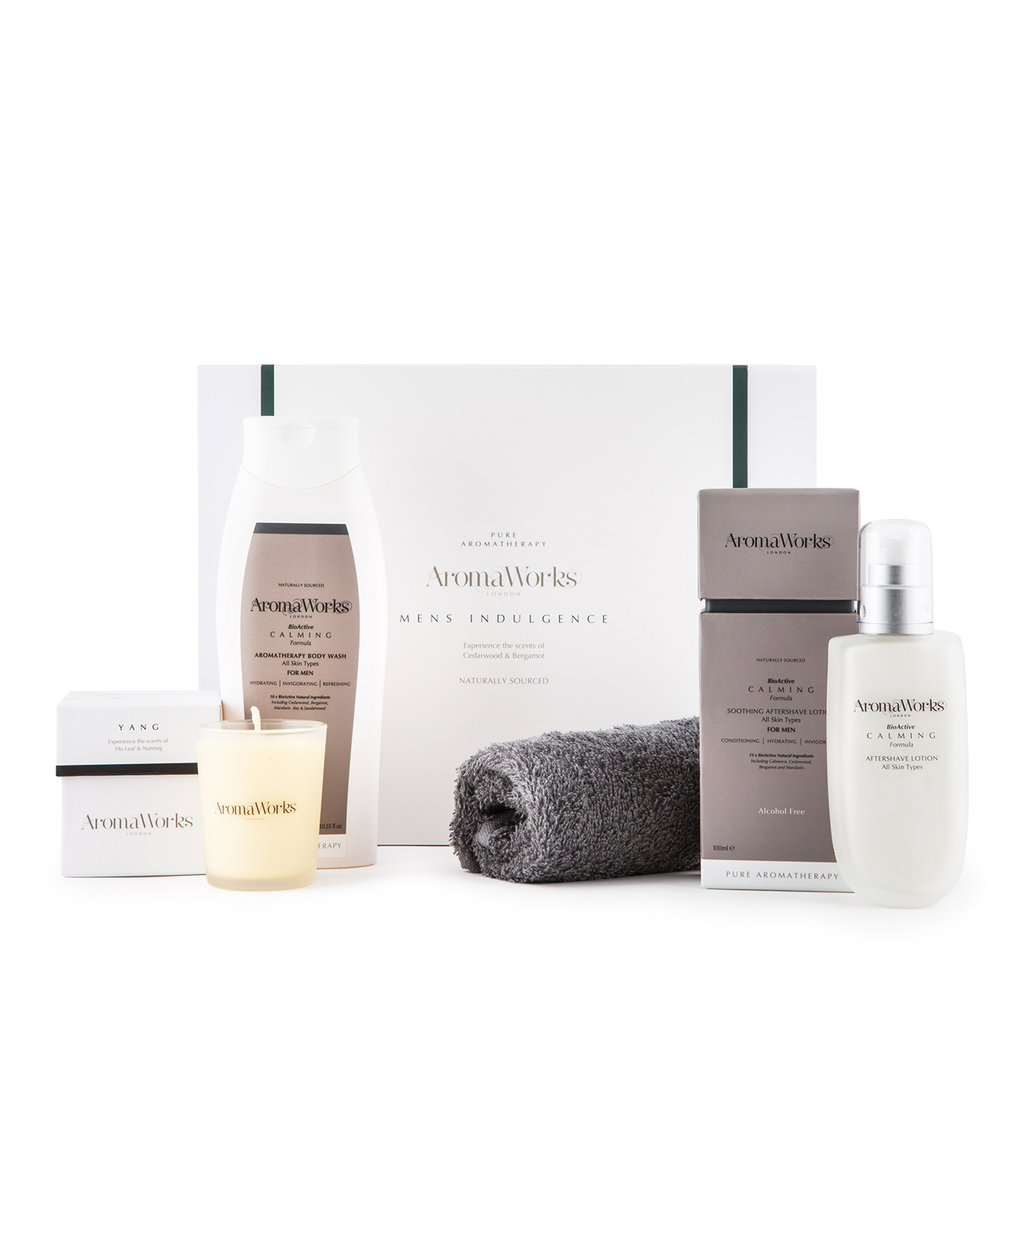 AromaWorks Men's Indulgence Box Cosmetics Online